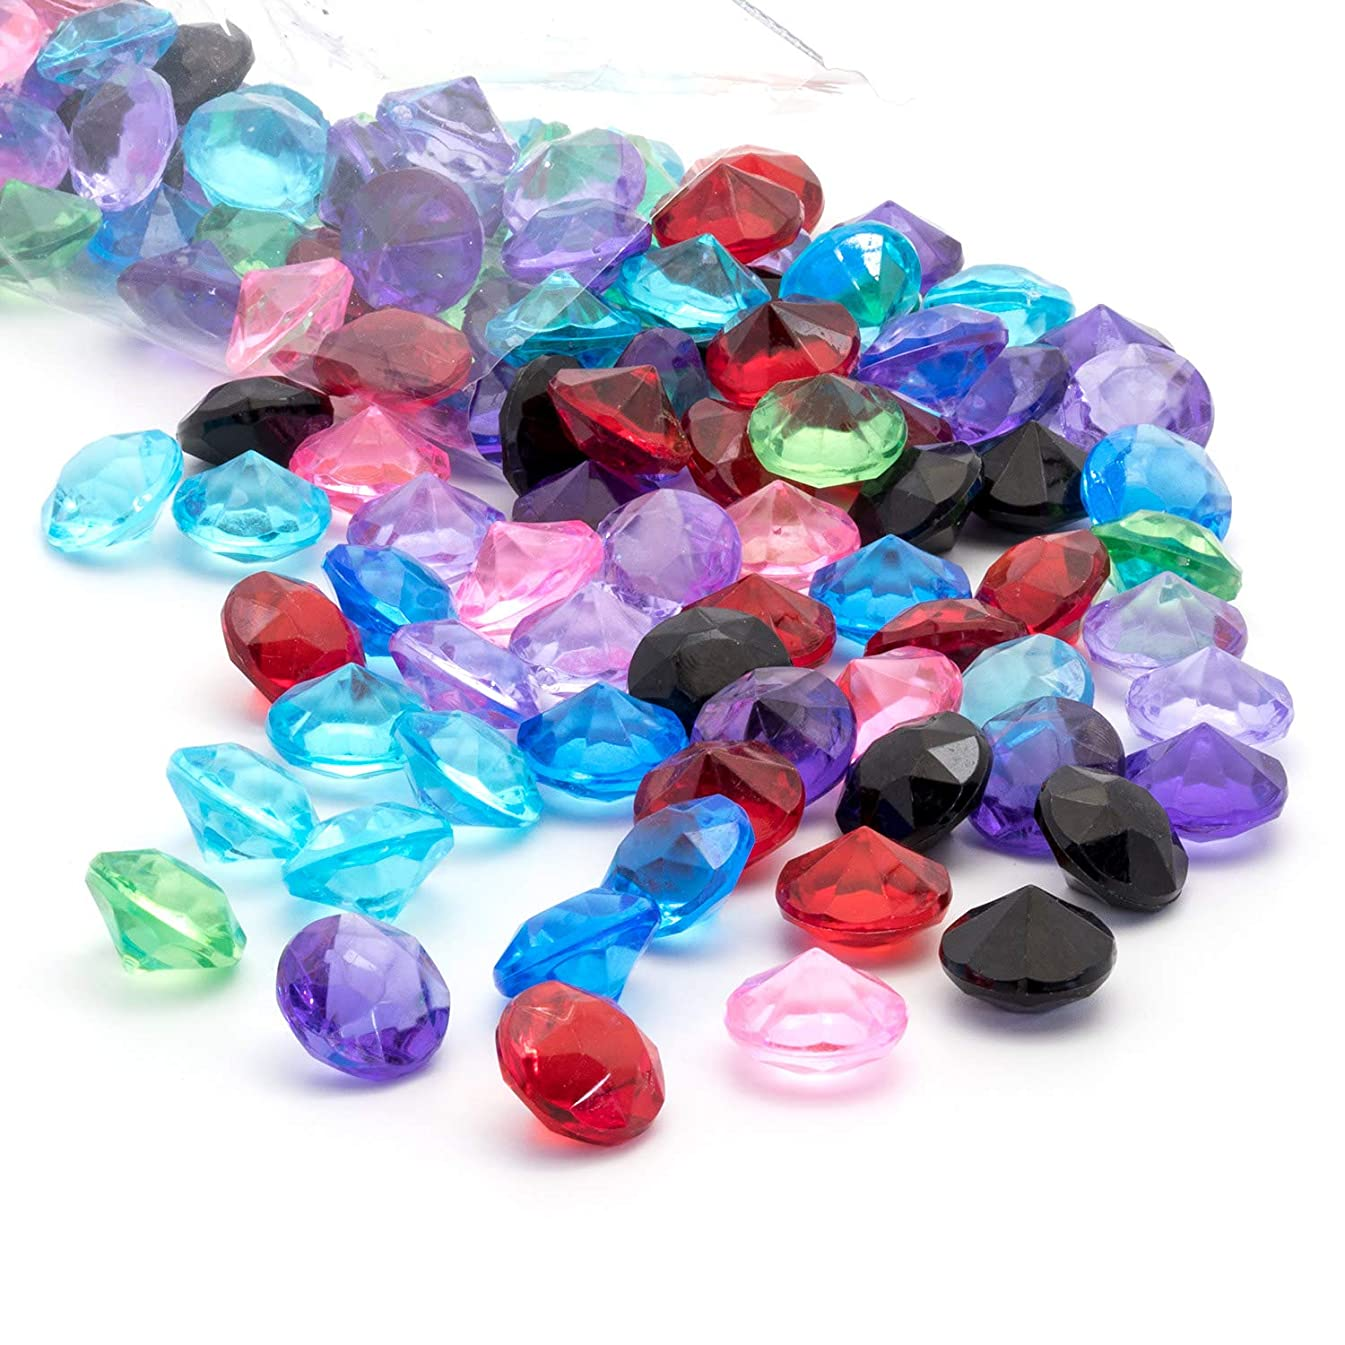 Acrylic Diamonds Gems Crystal Rocks for Vase Fillers, Party Table Scatter, Wedding, Photography, Party Decoration, Crafts by Royal Imports, 1 LB (Approx 140-160 gems) - Mixed Colors